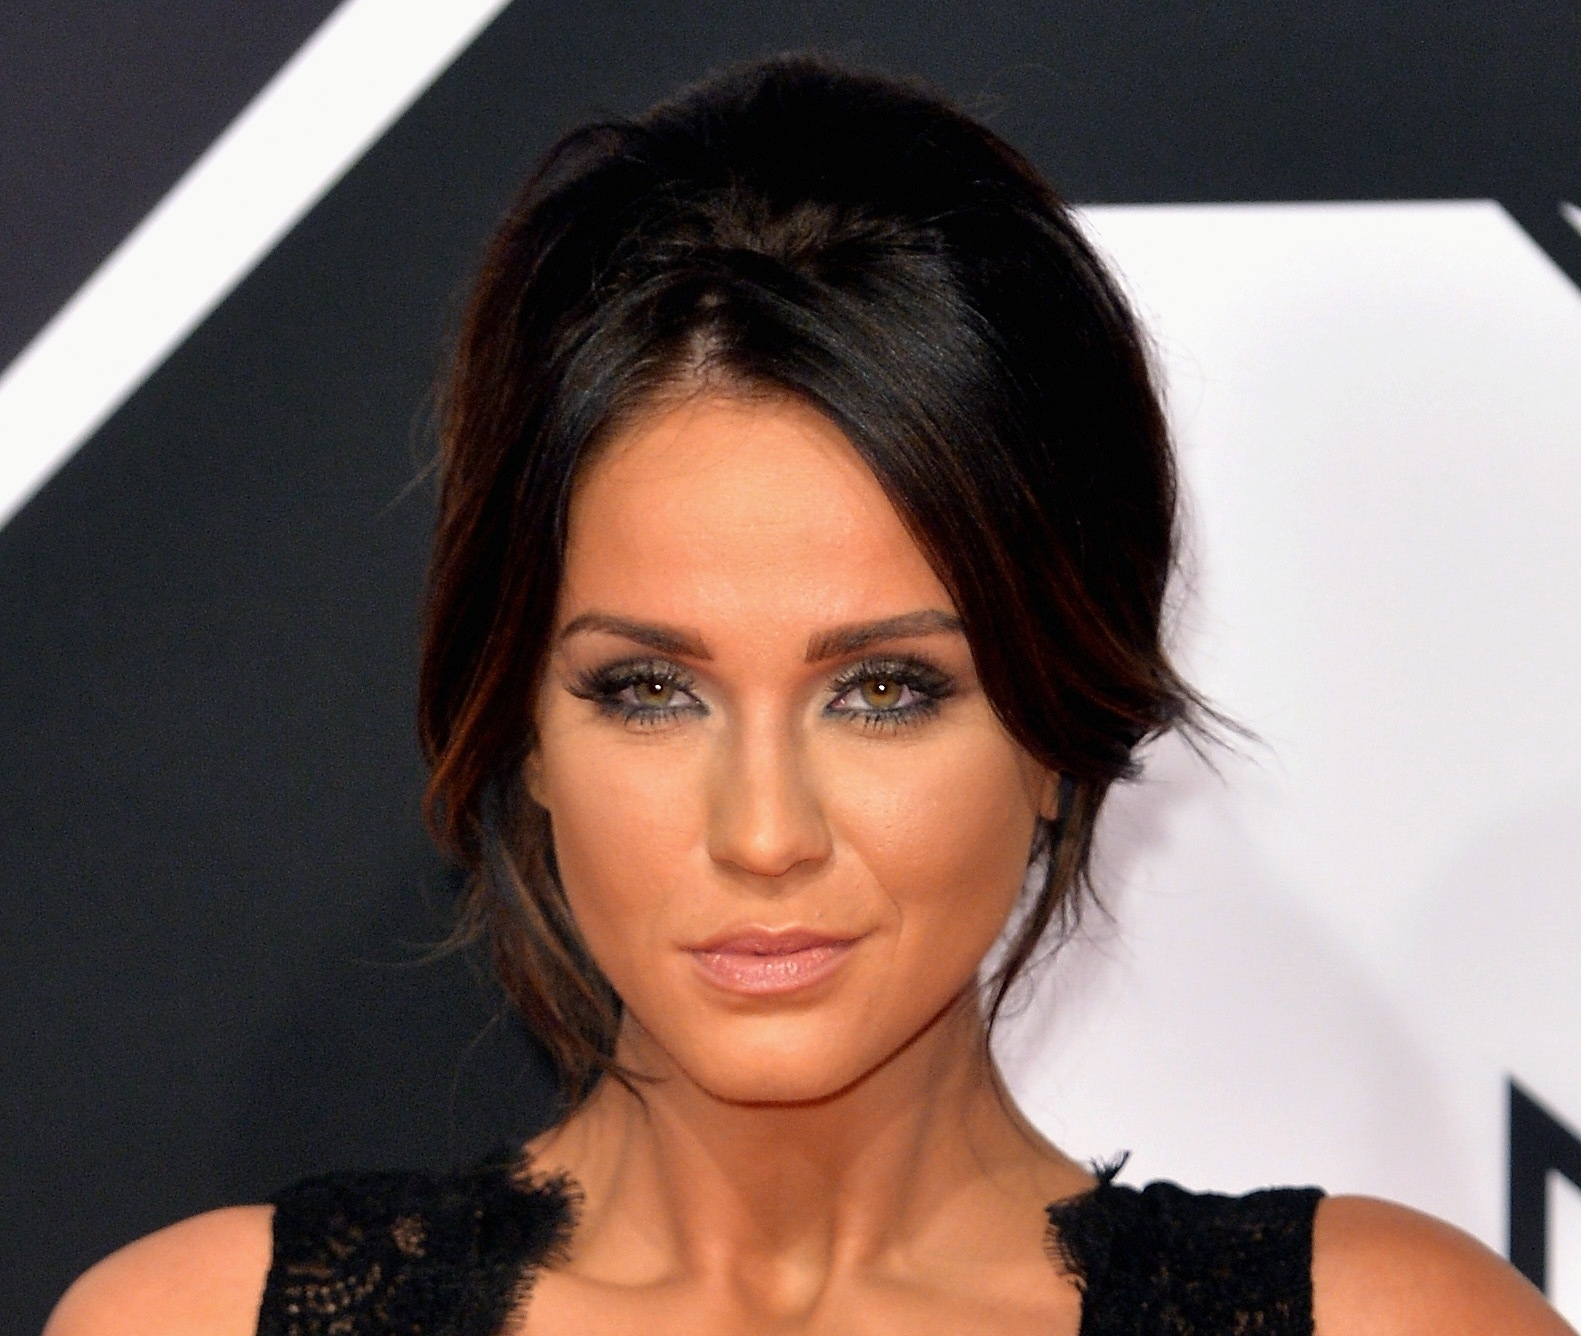 Vicky Pattison's Before And After Beach Photos Of Her